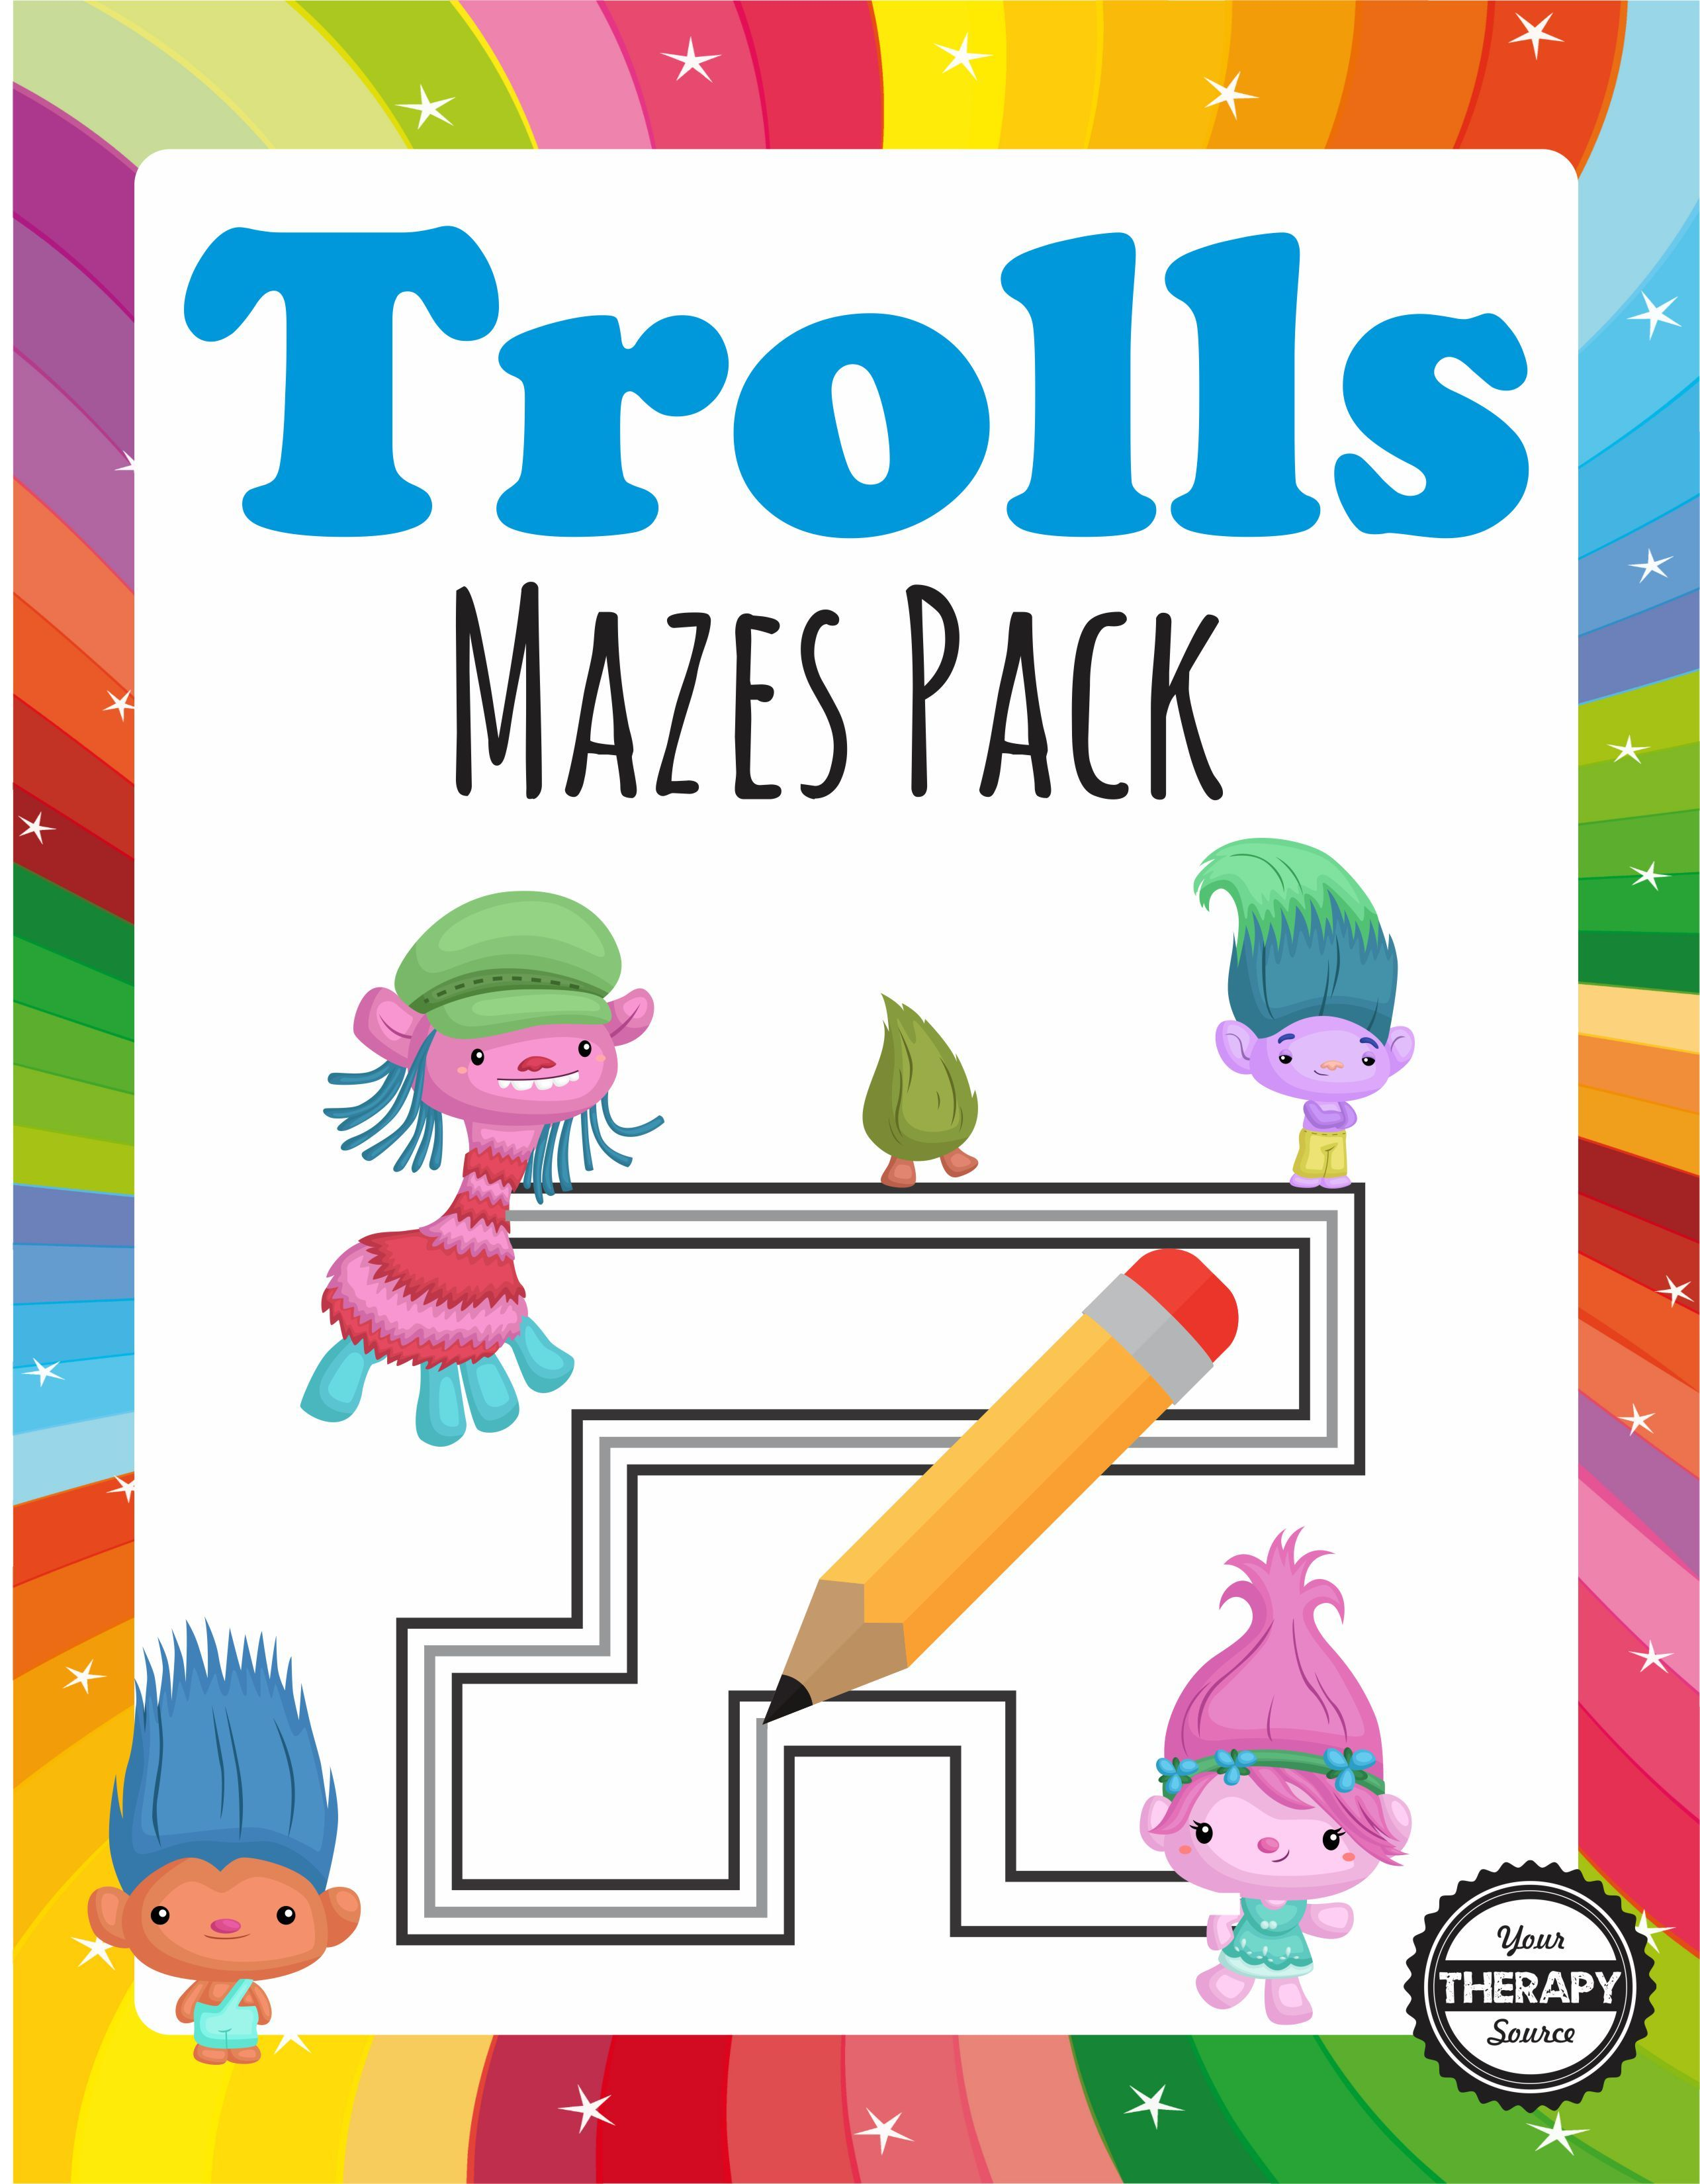 Here Are 15 Trolls Mazes For Children To Have Some Technology Free Fun Great For Rainy Days